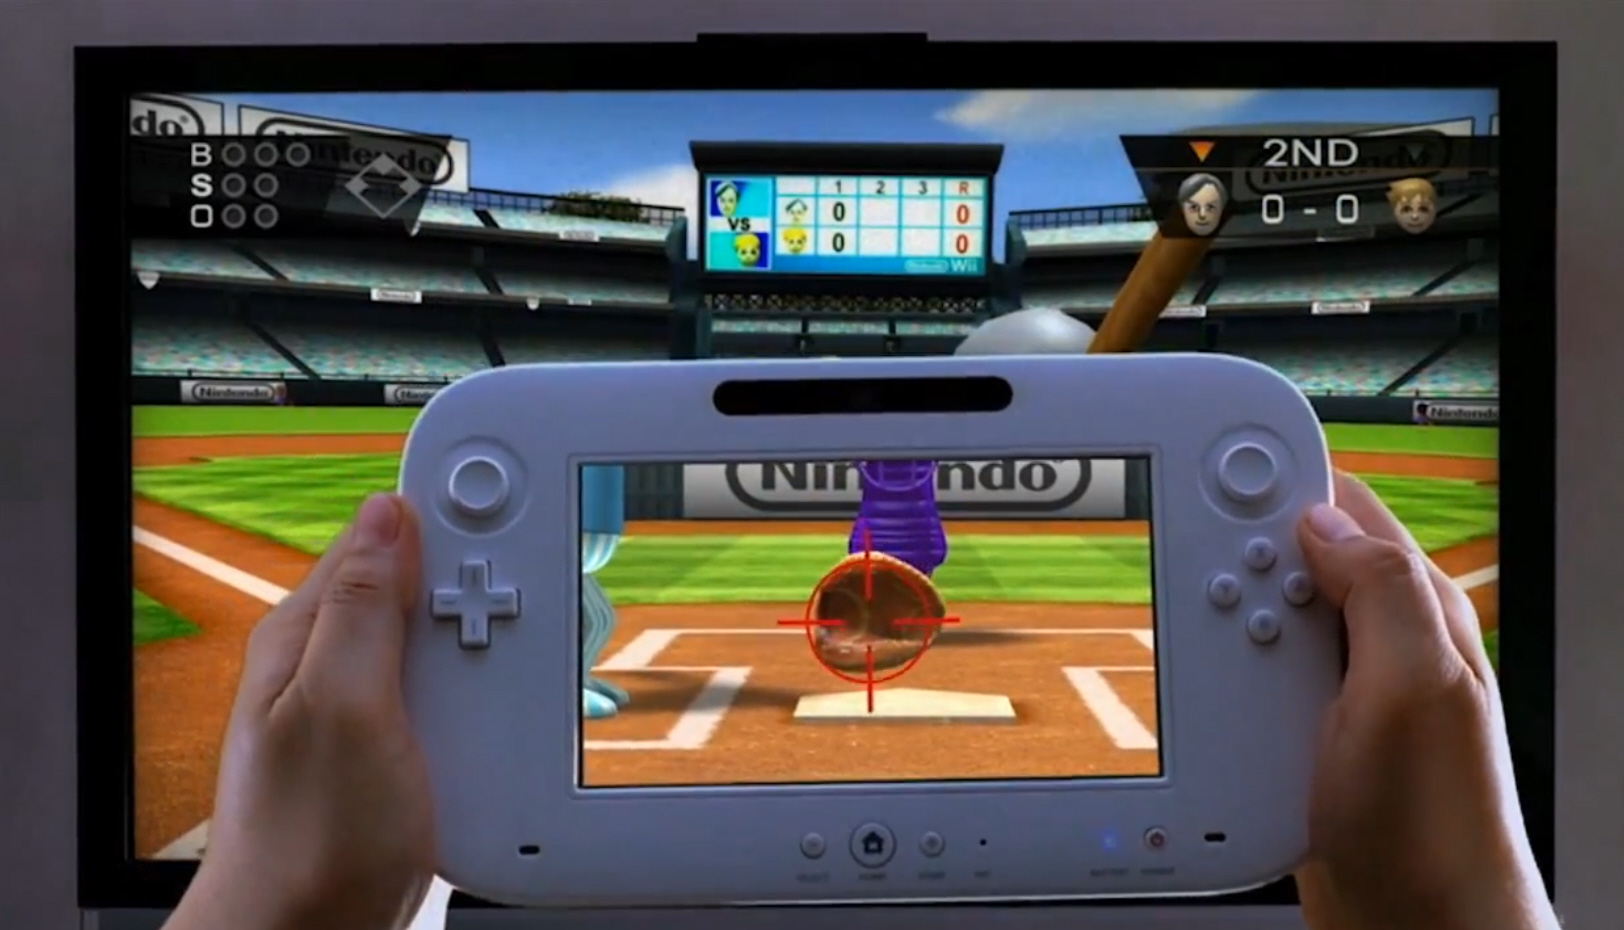 wii-u-asymmetric-diversity-gameplay-in-action-on-controller-gamepad-and-tv-screens1.jpg